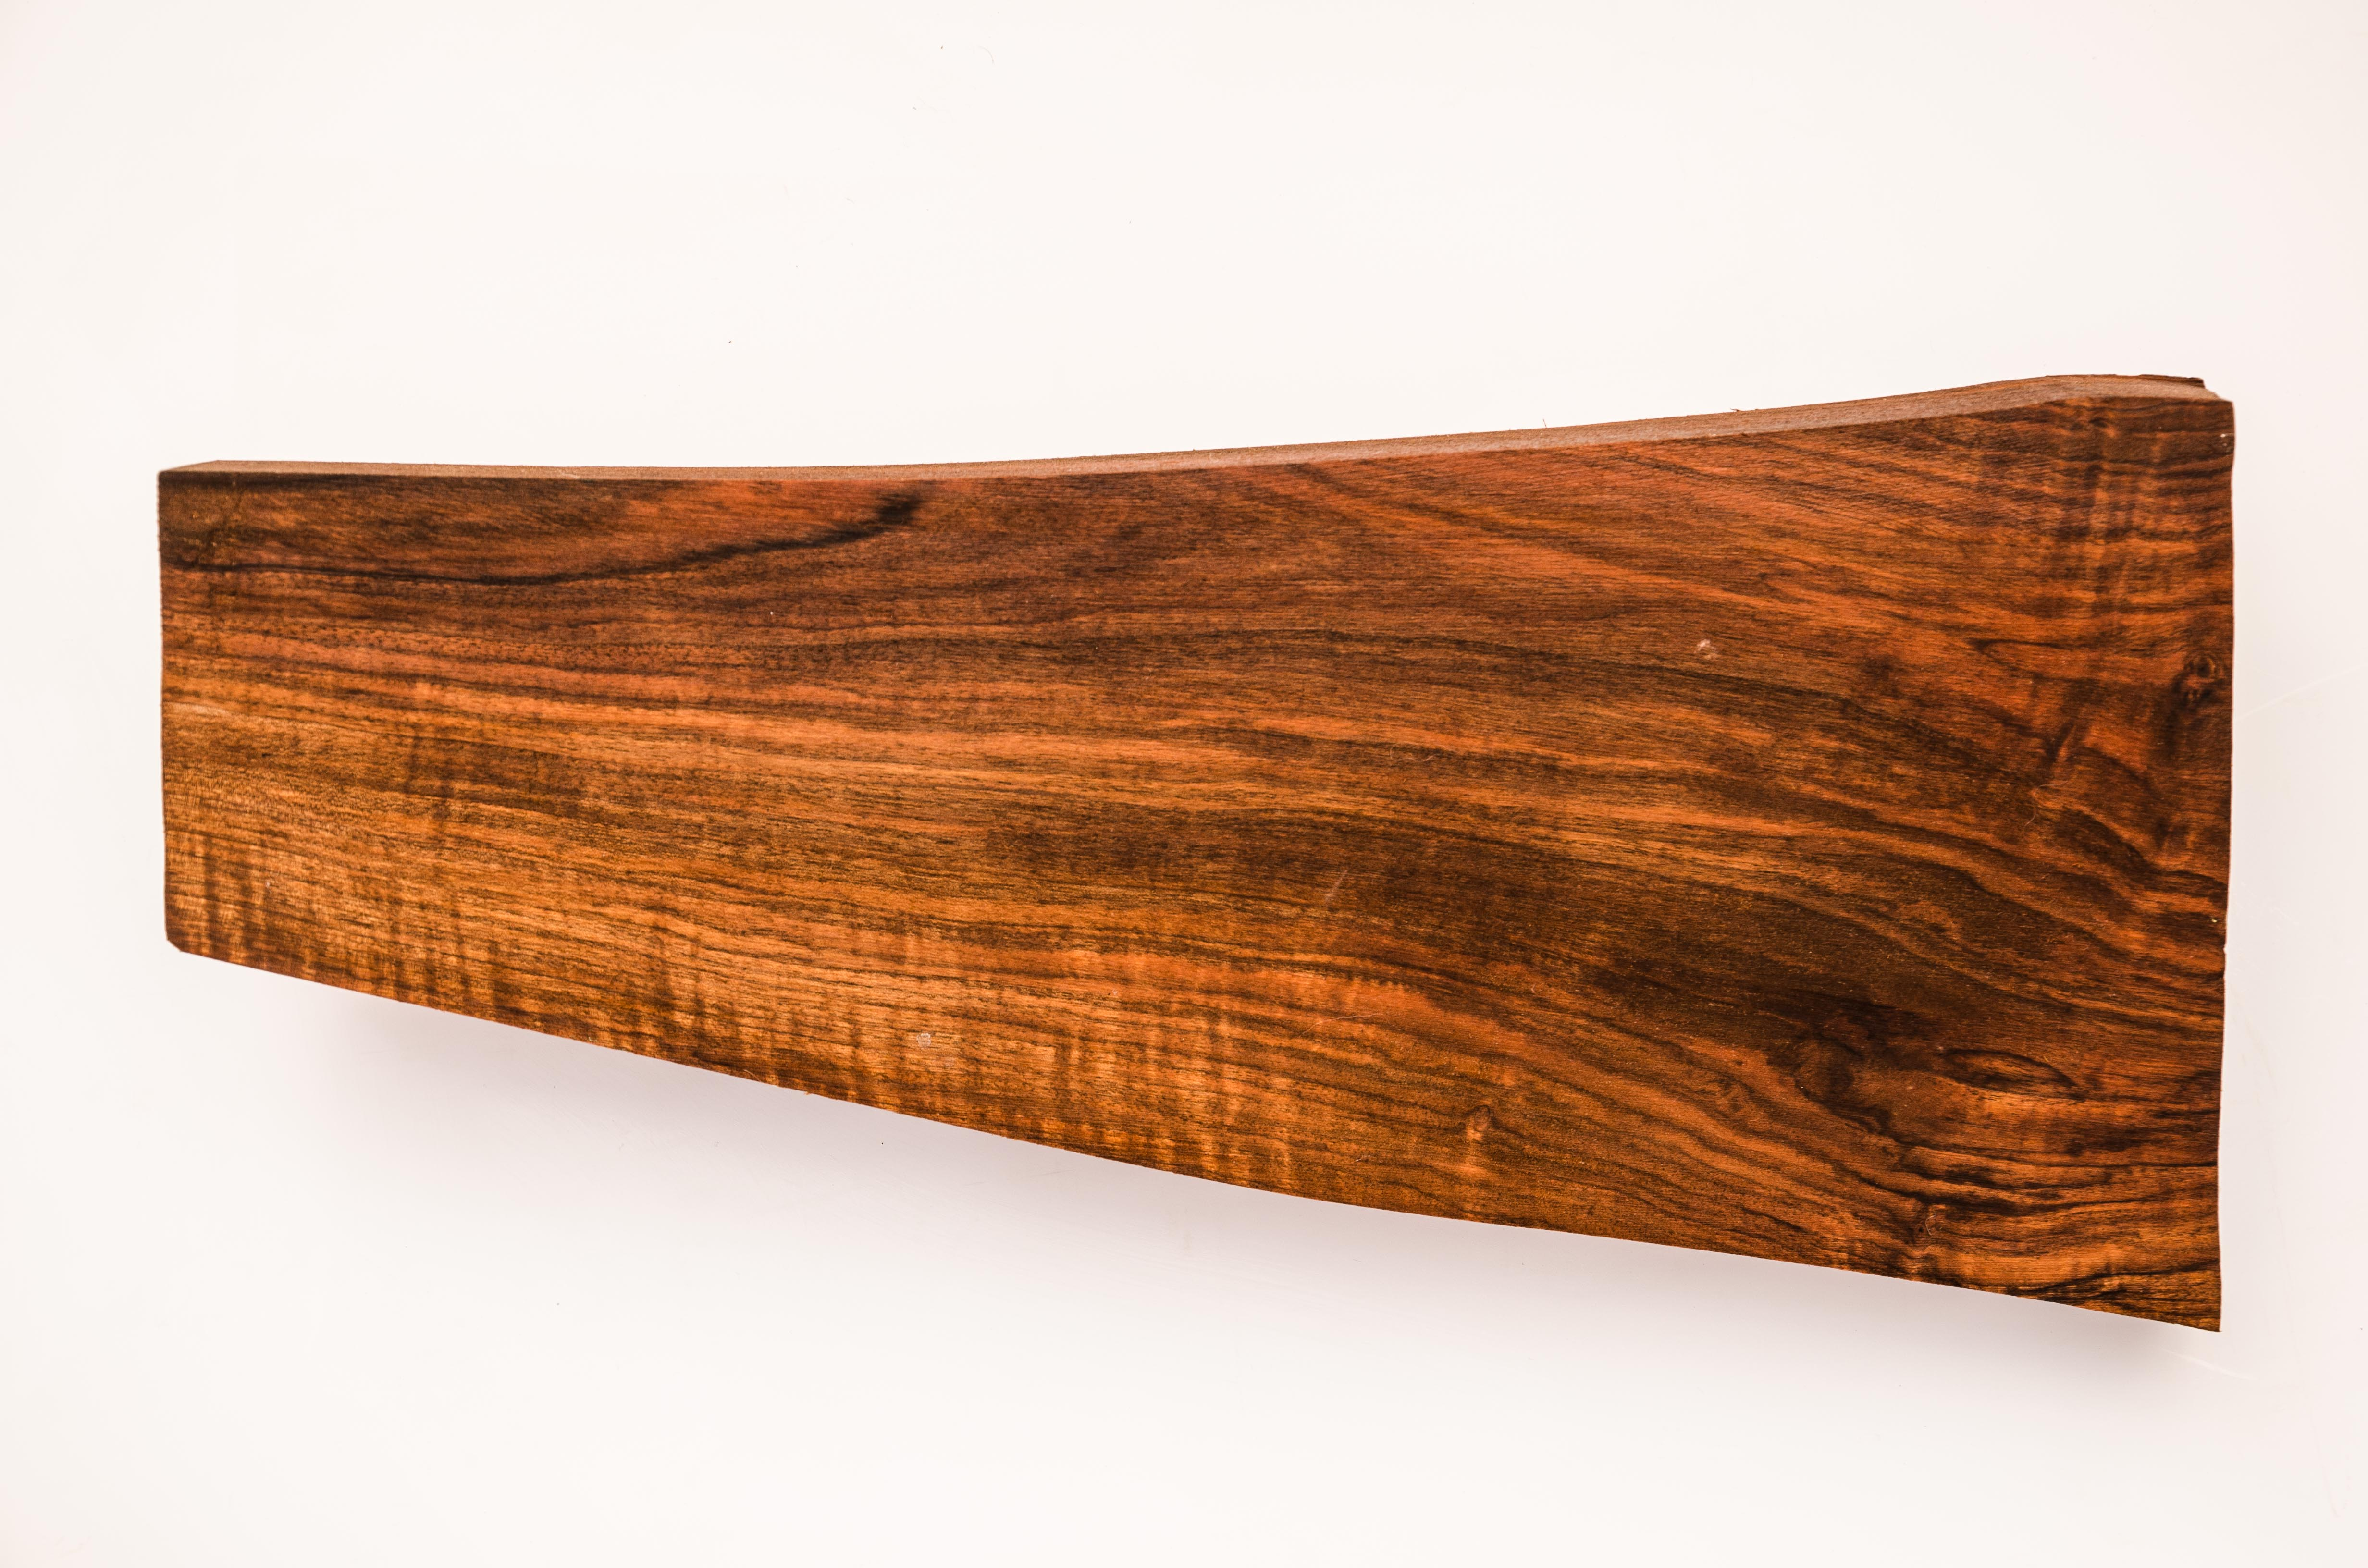 walnut_stock_blanks_for_guns_and_rifles-0551